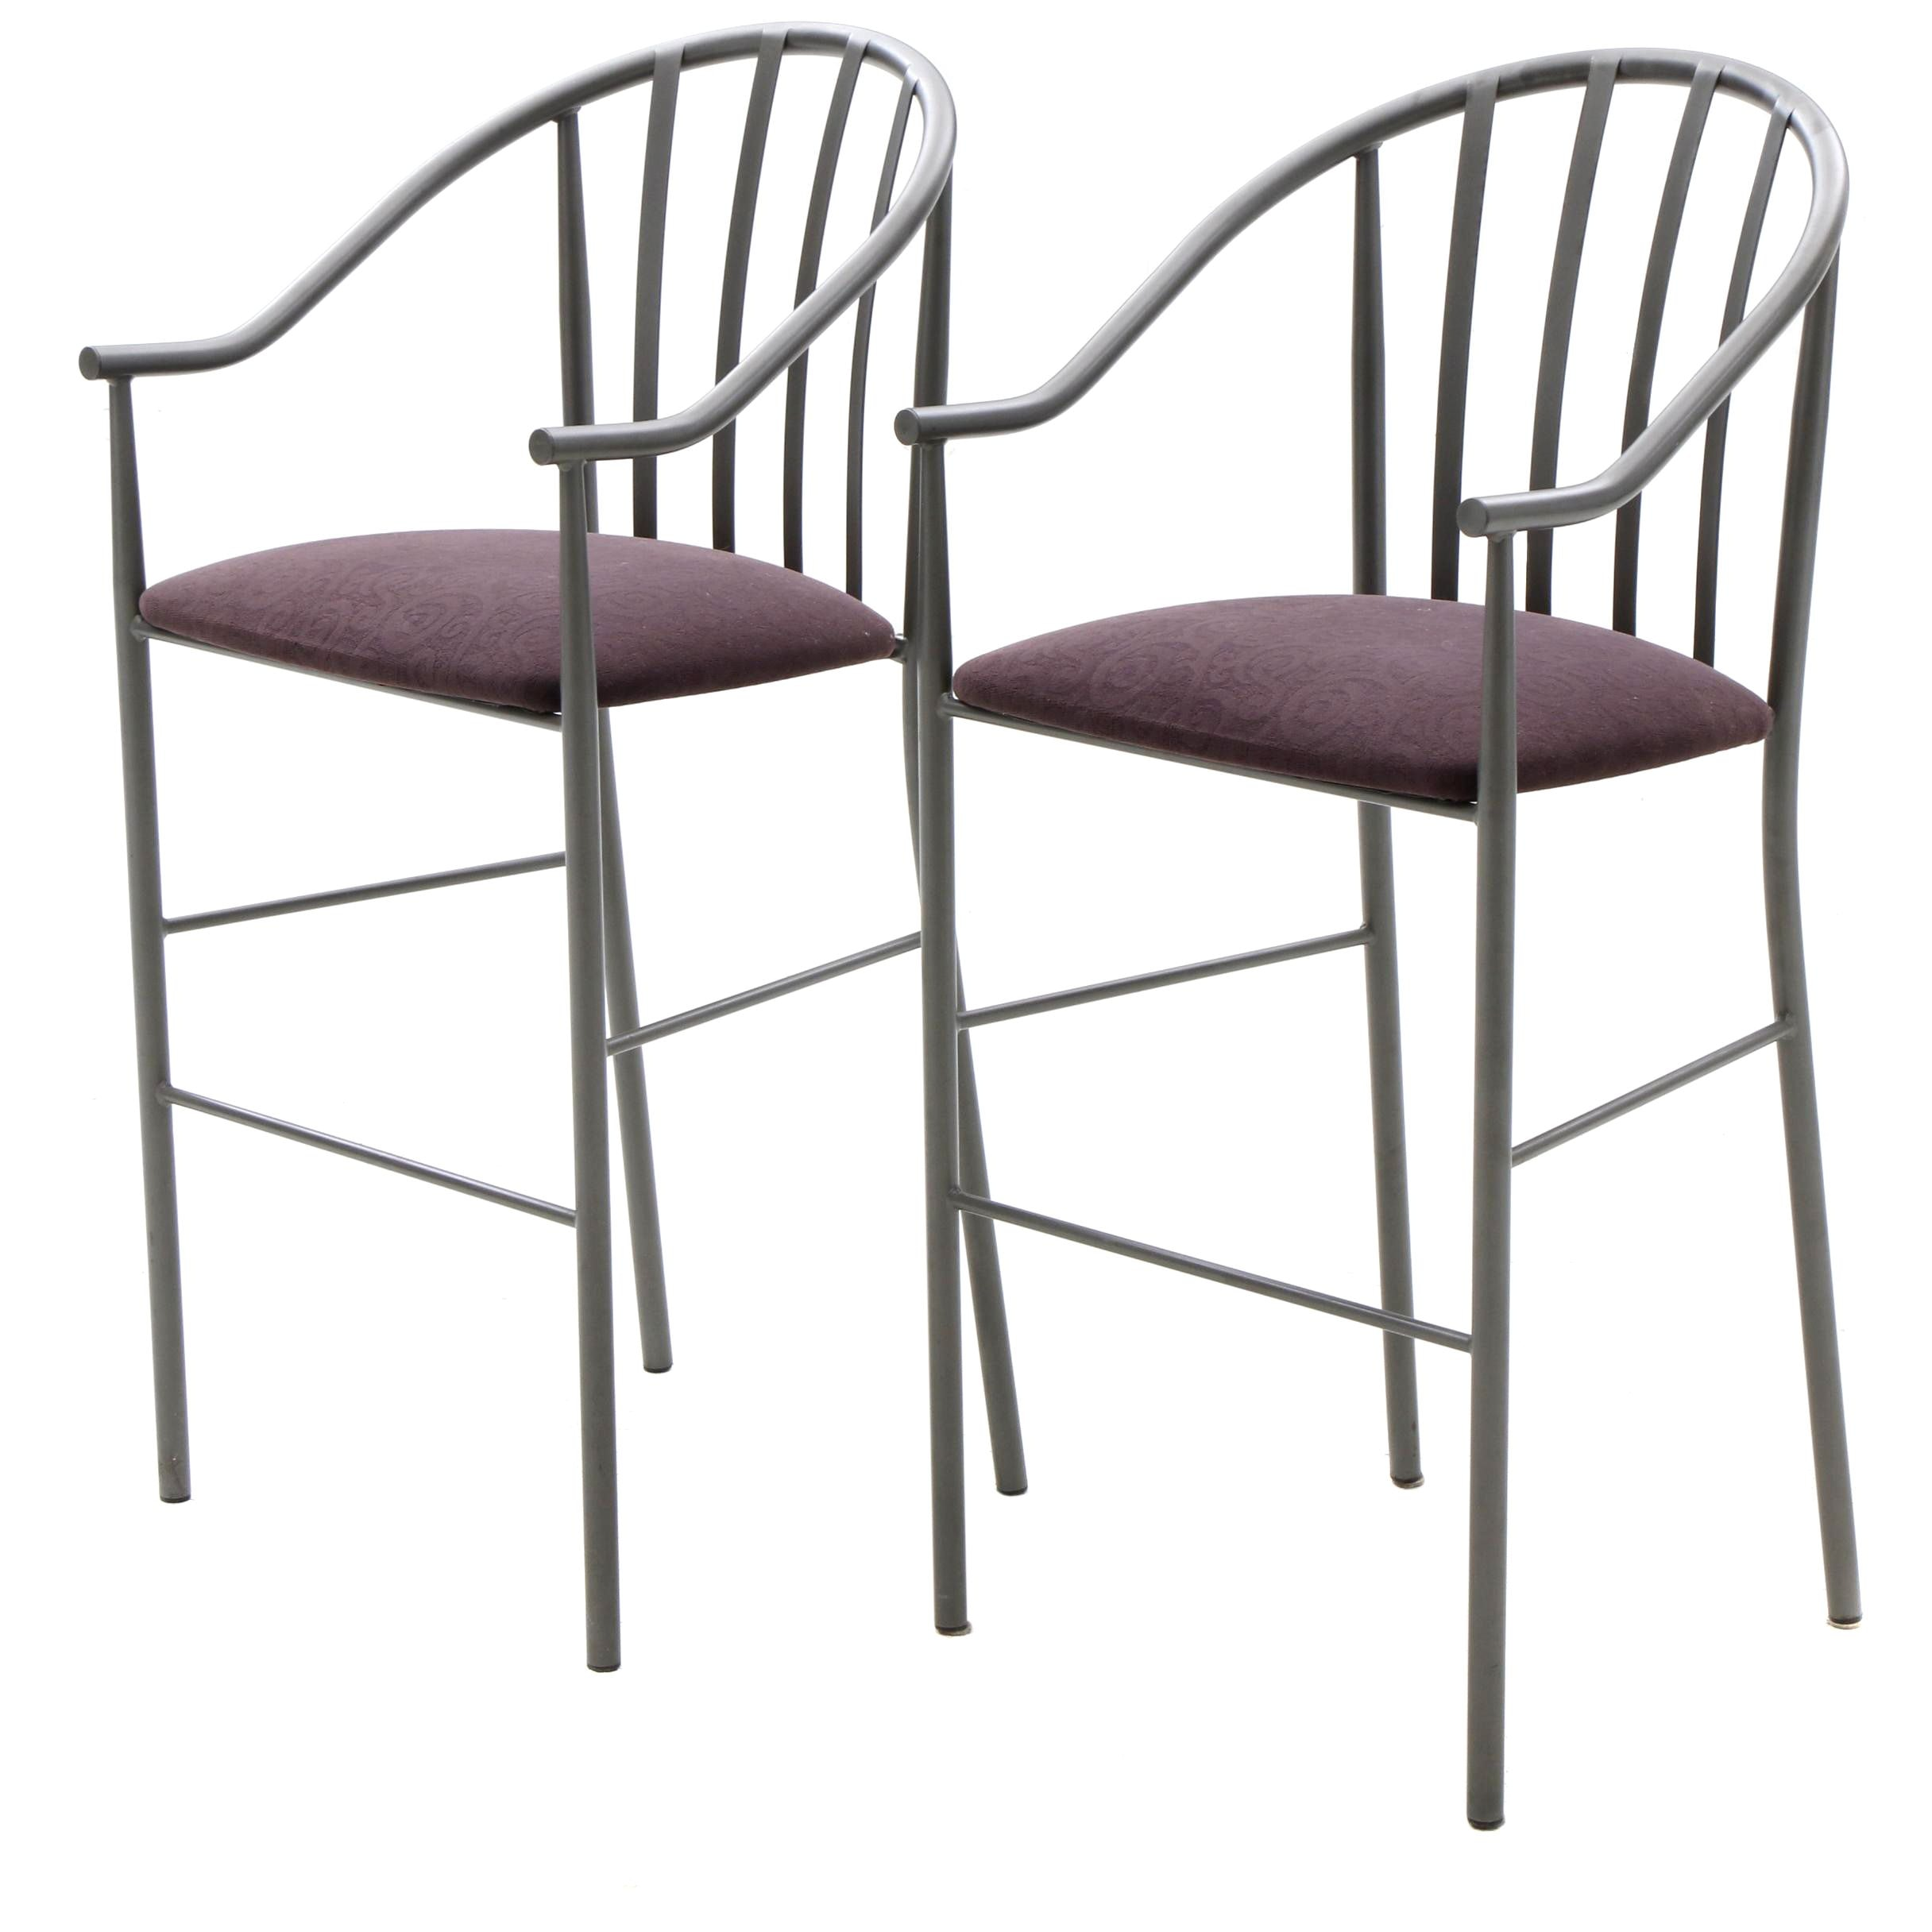 Upholstered Metal Frame Counter Height Chairs by Amisco Industries Ltd.